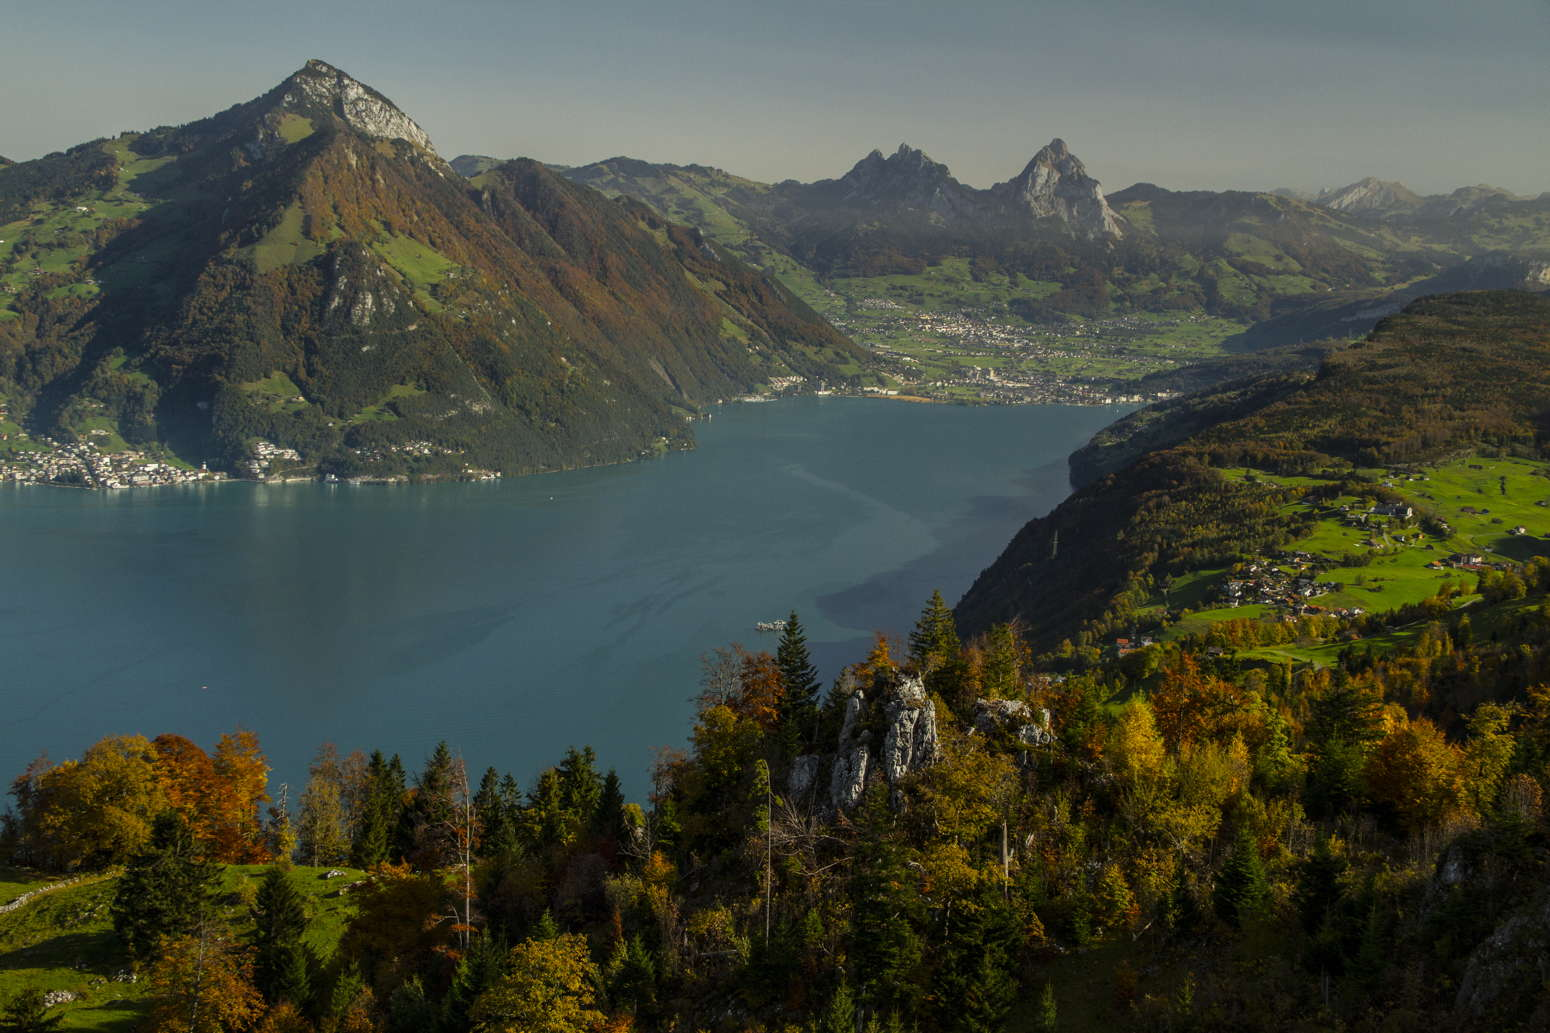 autumn klewenalp switzerland lake lucerne vierwaldstättersee fall colors robert peterson photography